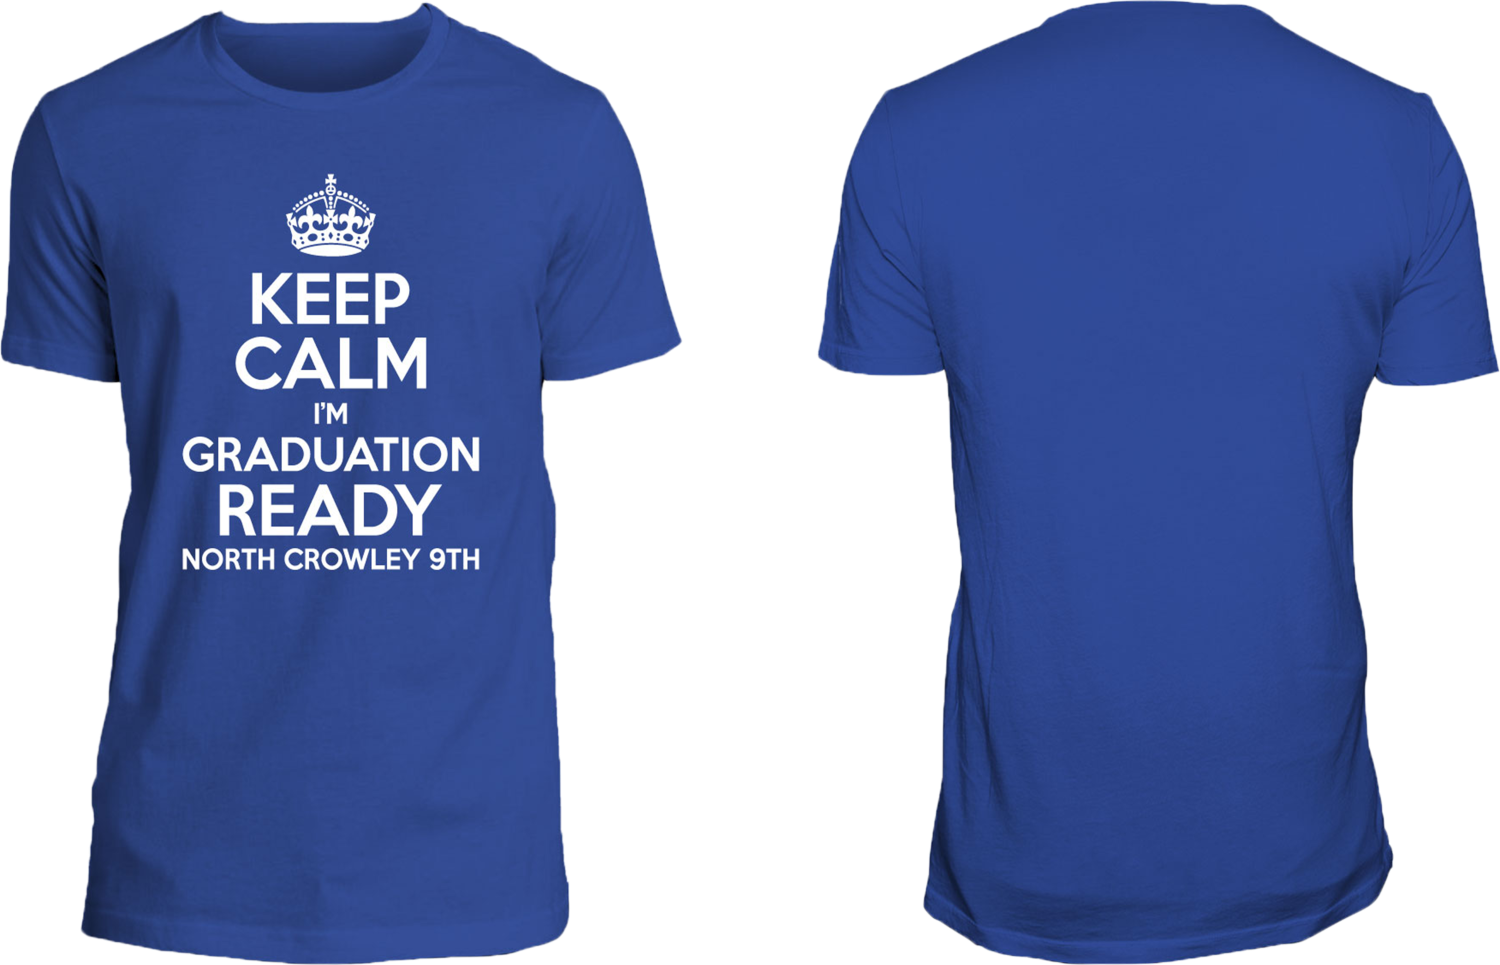 KeepCalm-GradReady